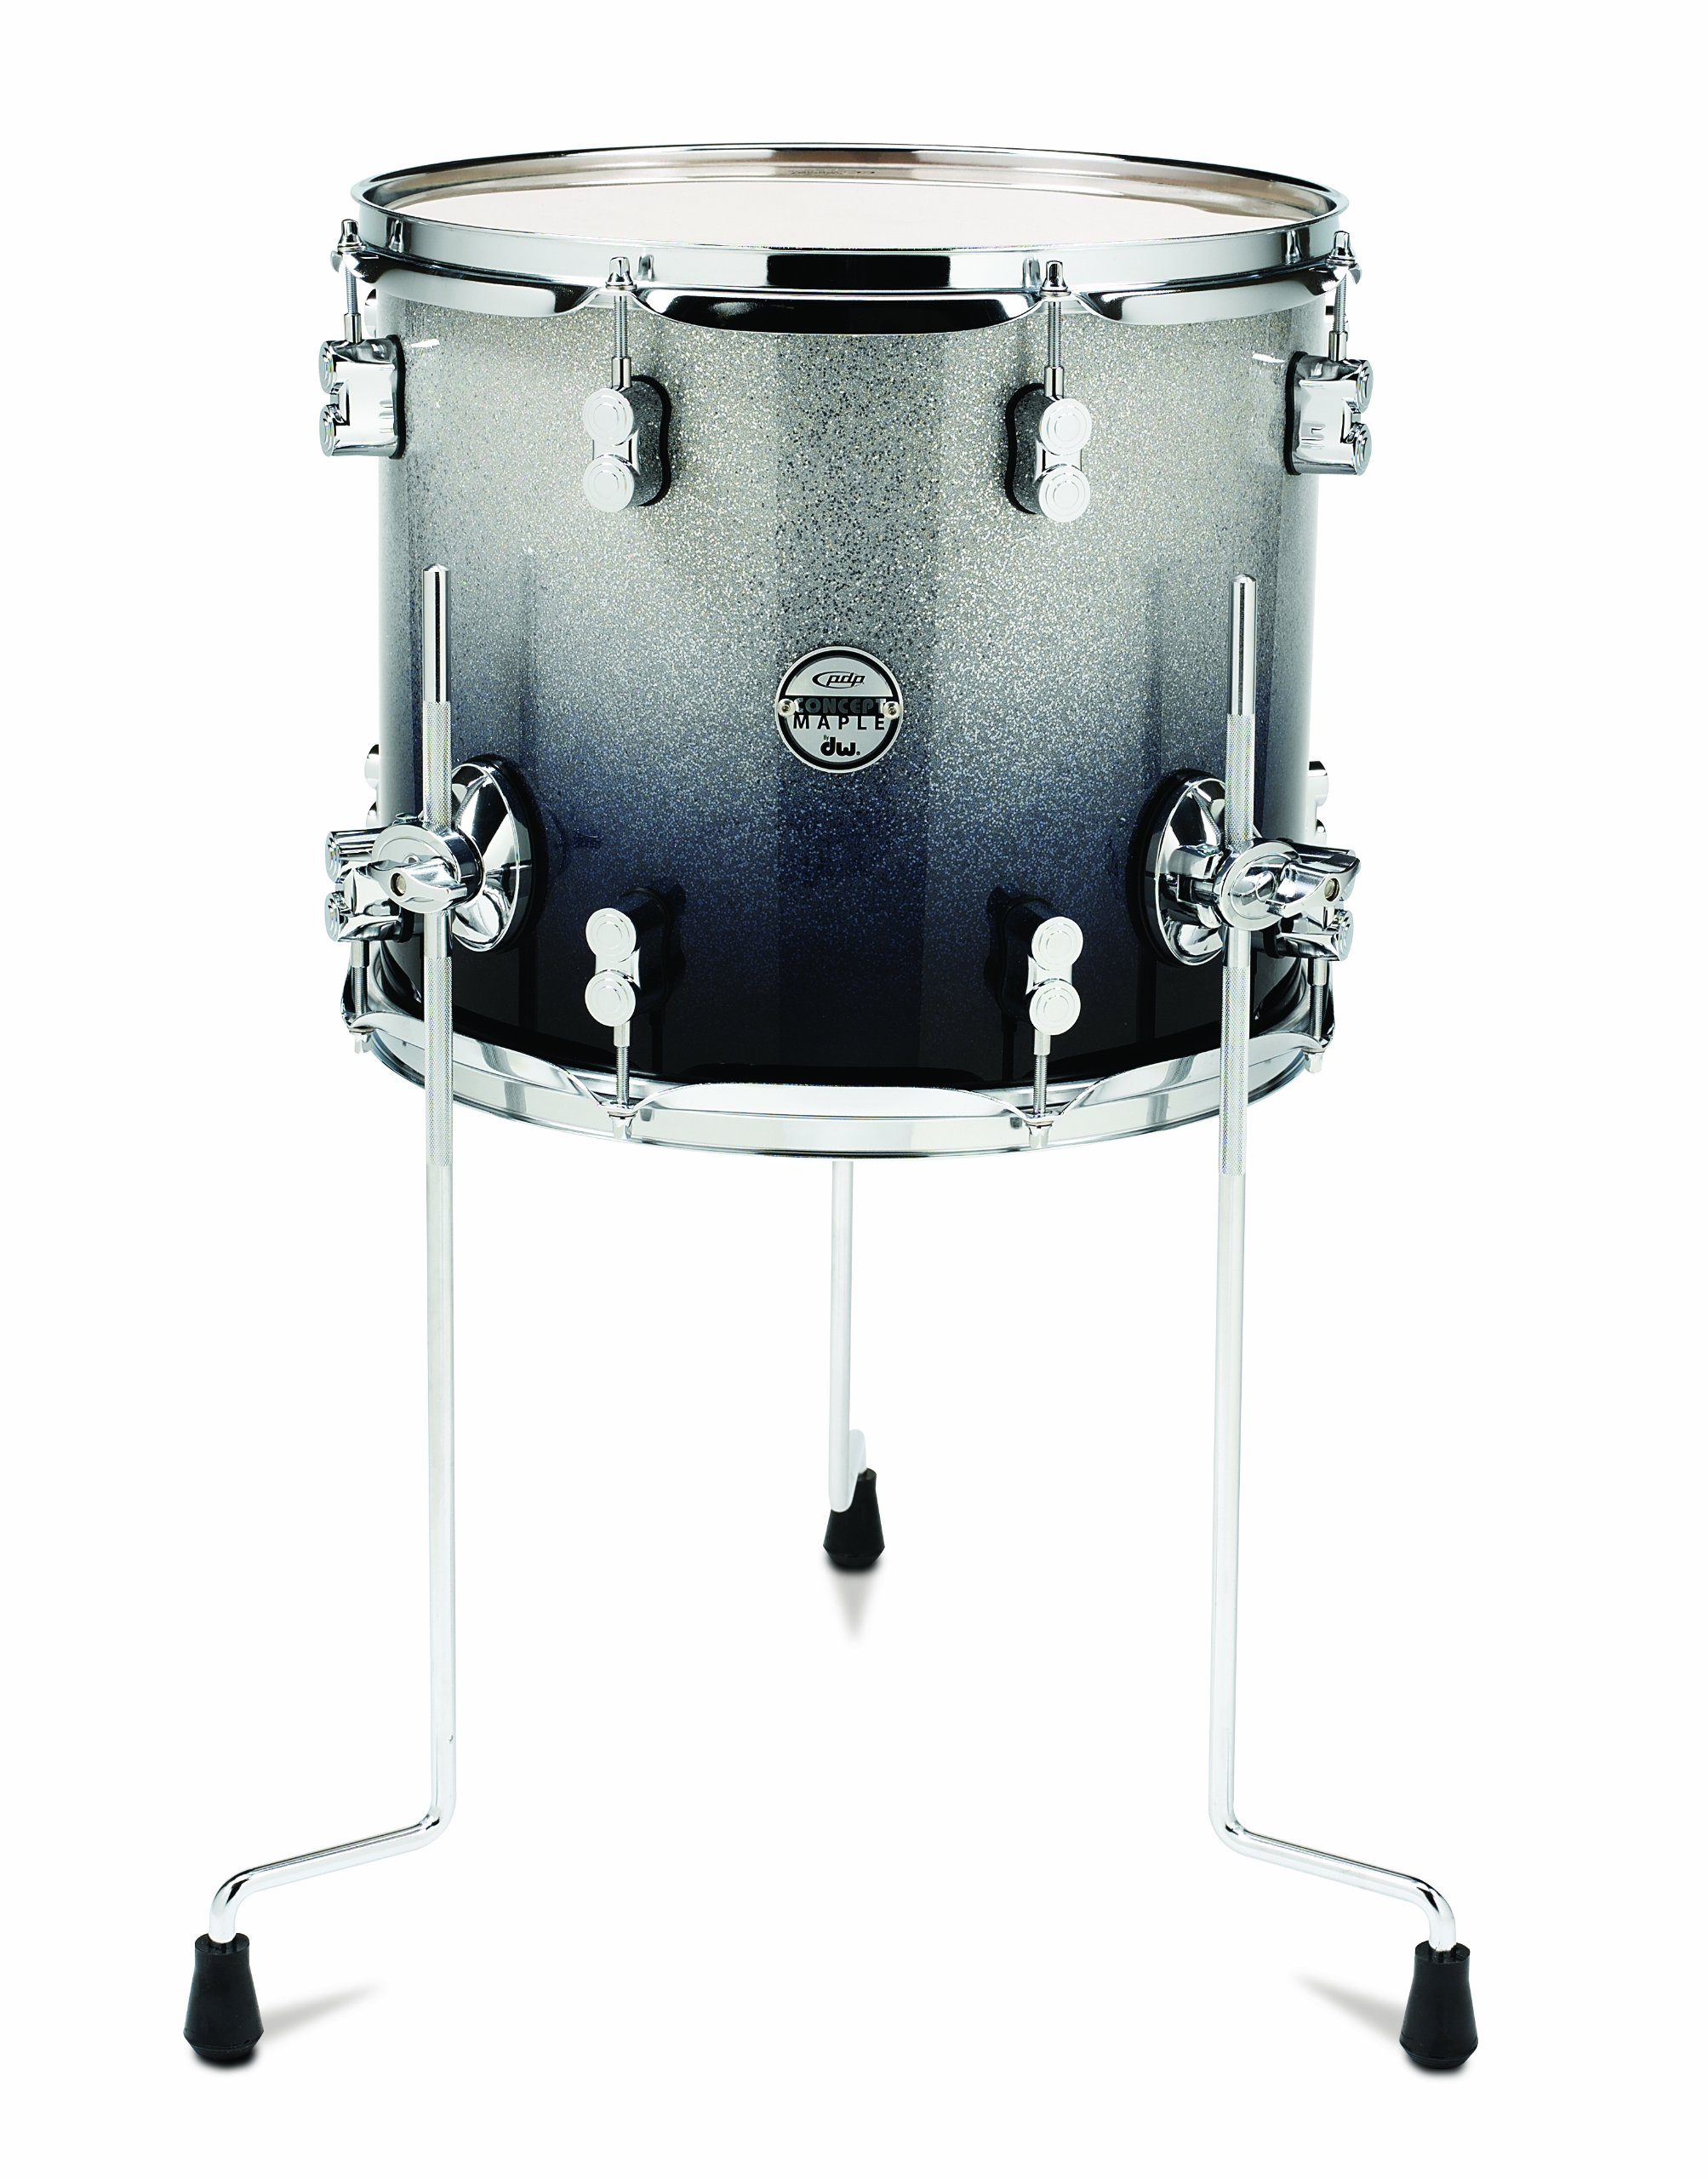 Pacific Drums PDCM1214TTSB 12 x 14 Inches Floor Tom with Chrome Hardware - Silver to Black Fade